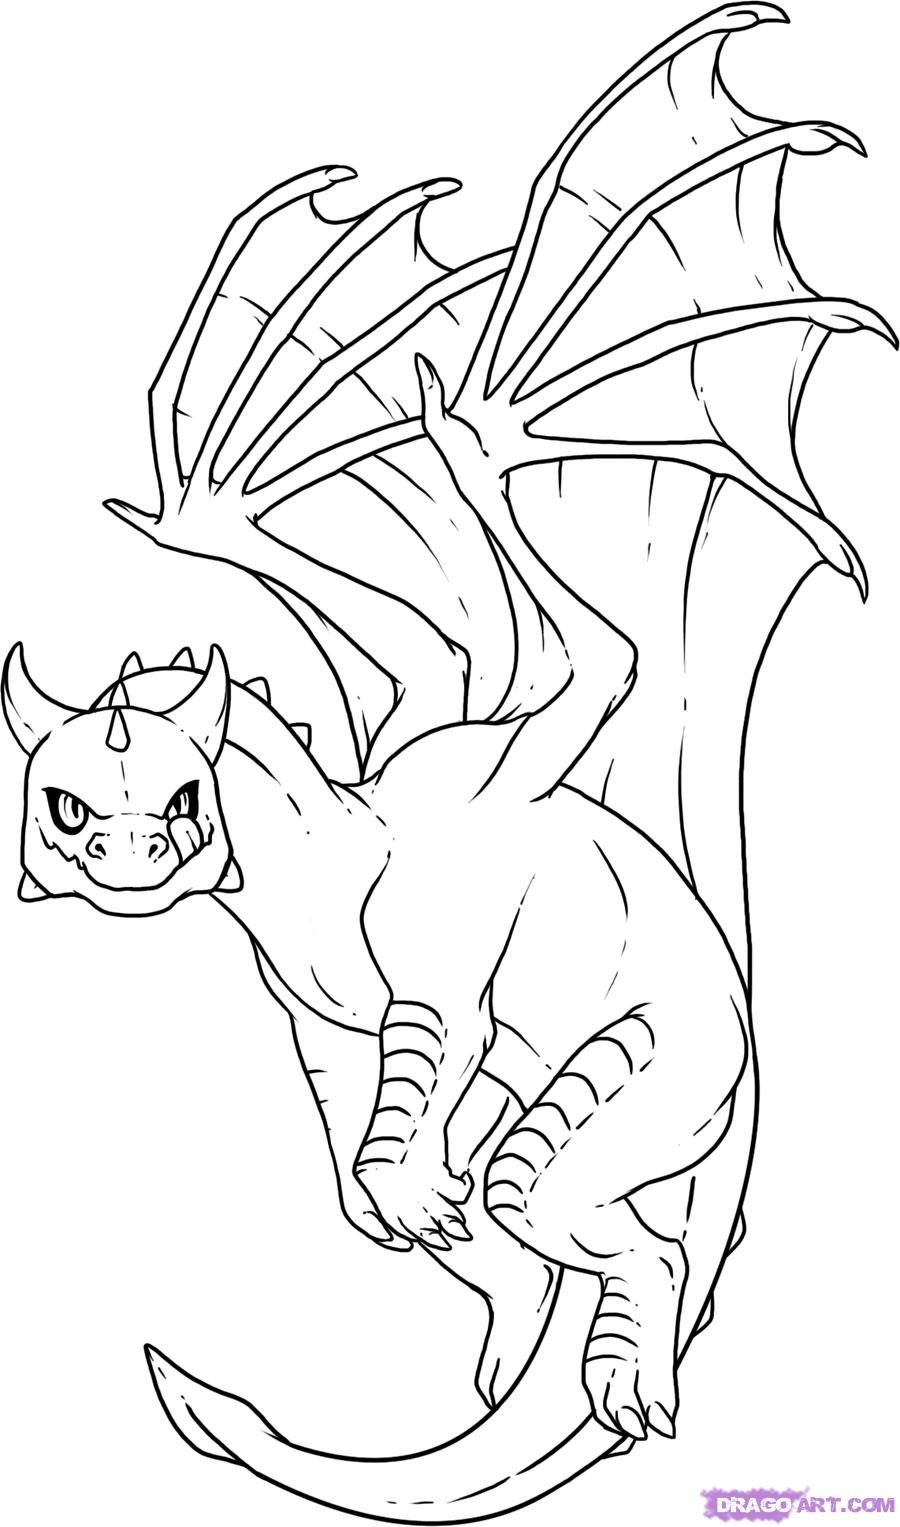 Dragon Coloring Pages | How to Draw Baby Dragon, Step by Step ...